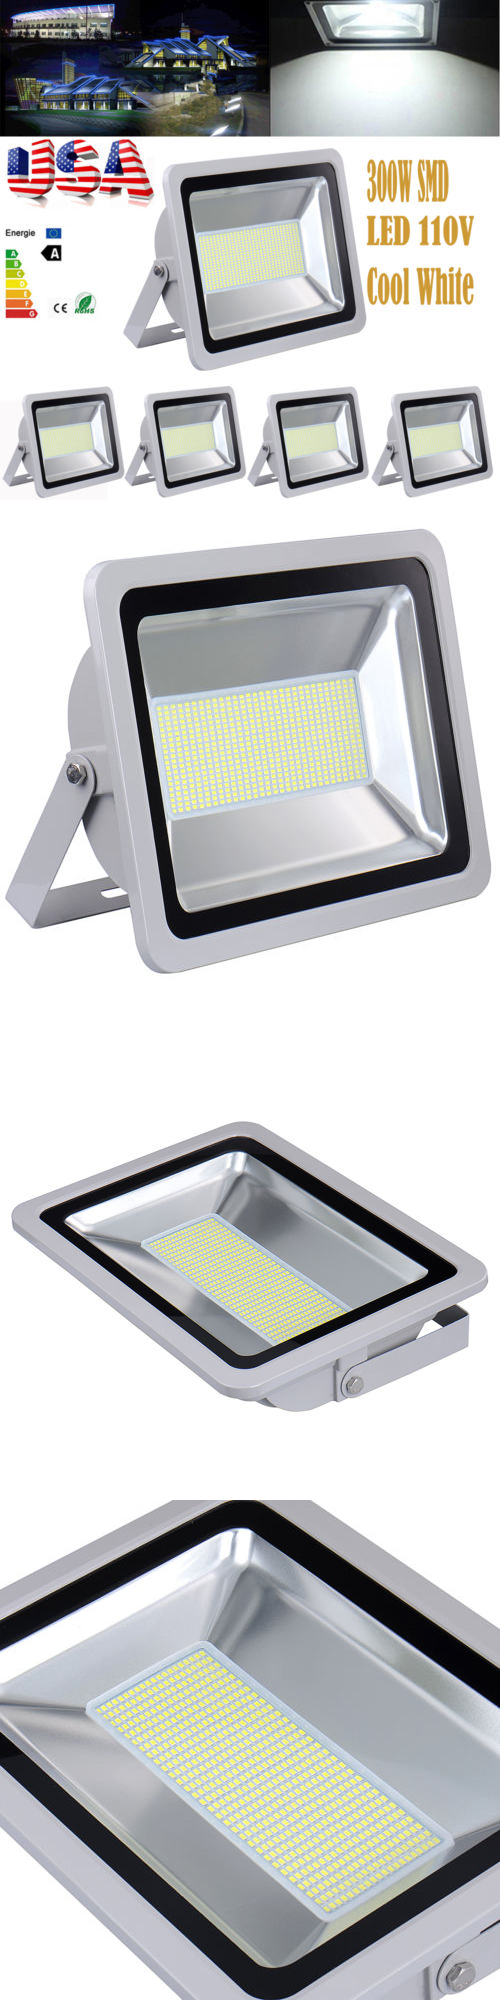 Outdoor security and floodlights x w watts outdoor led